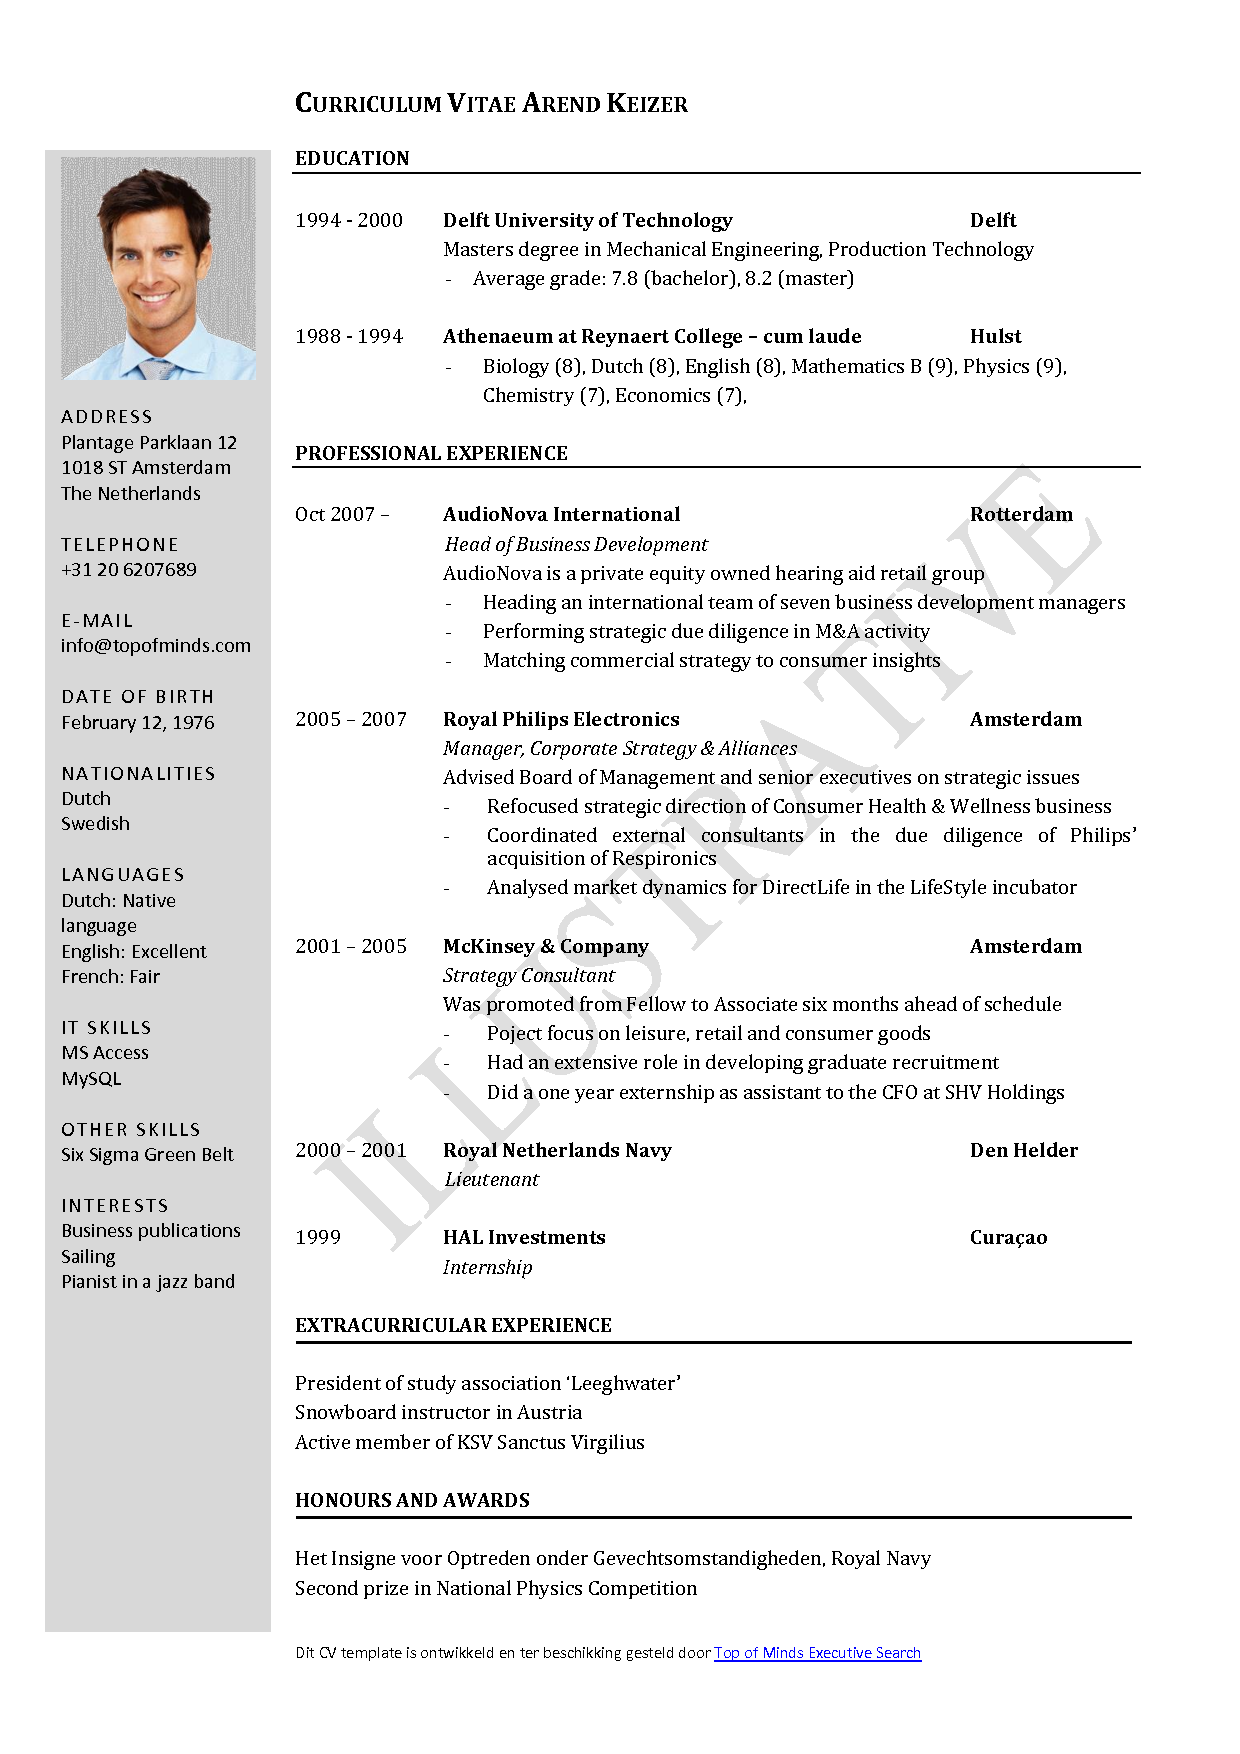 cv format for it - Ideal.vistalist.co